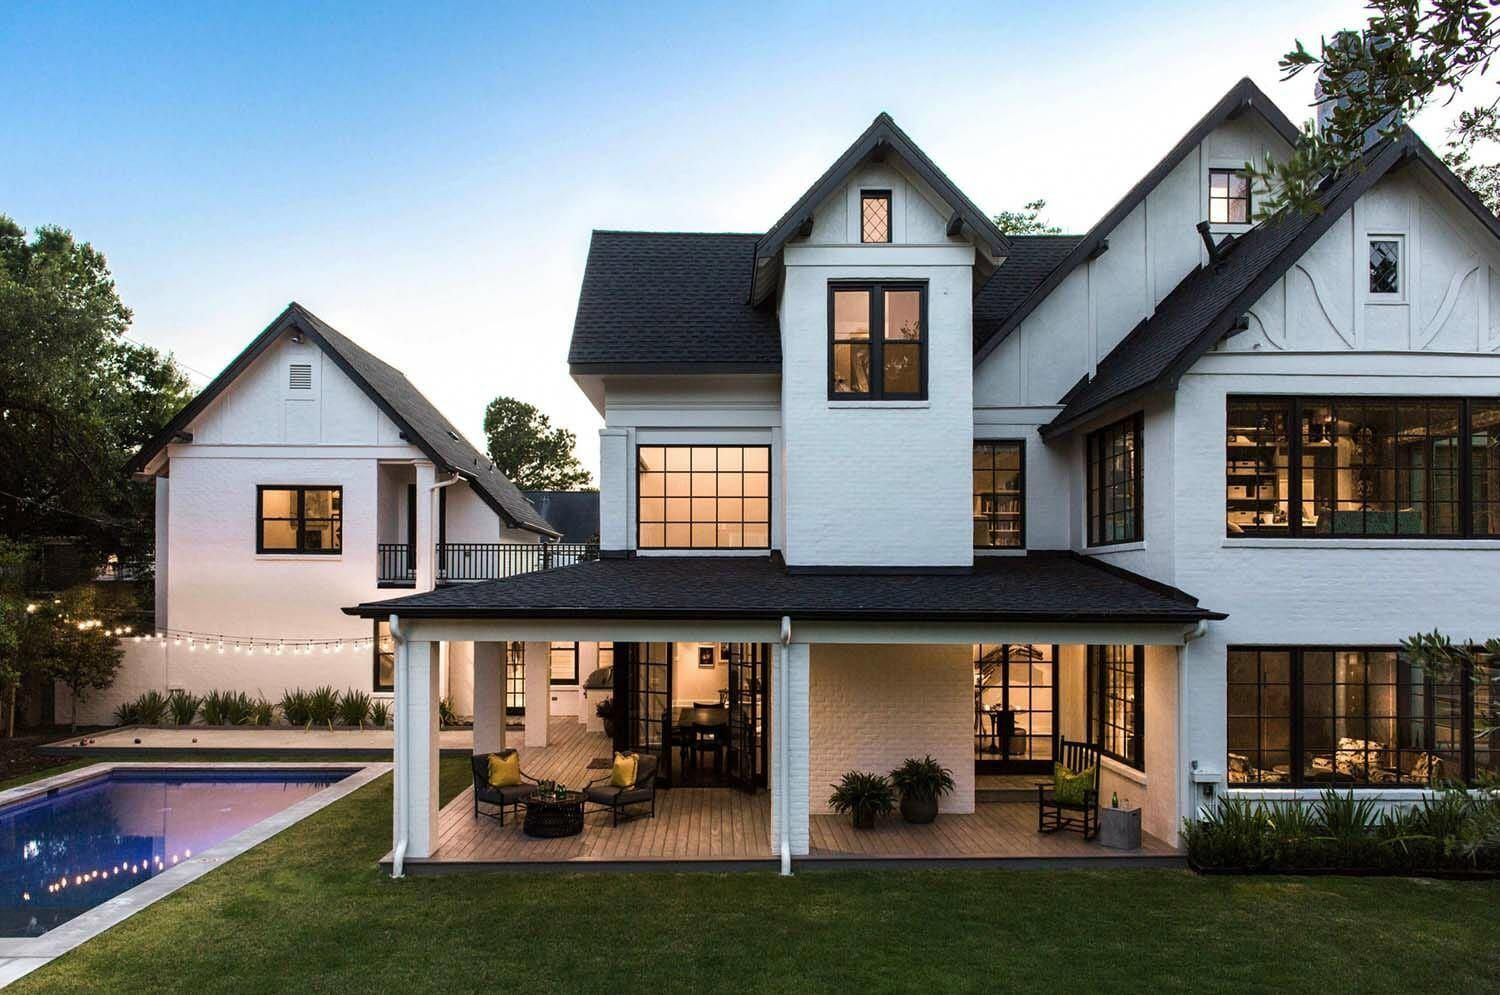 House Tour Gorgeous Modern English Tudor Home In The Upper Midwest In 2020 Tudor Style Homes House Interior Interior Design